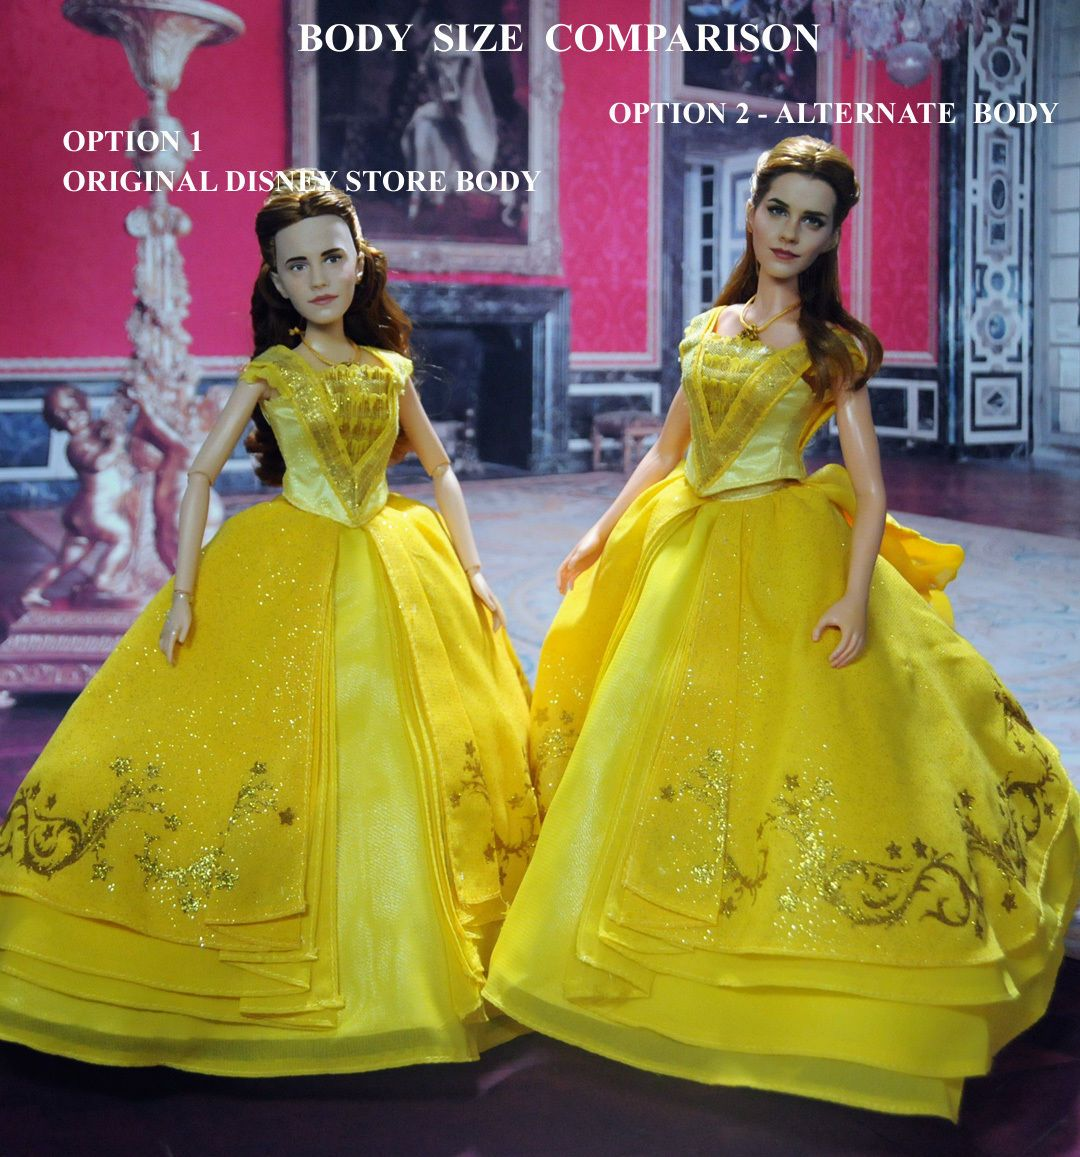 Dresses skirts clothes women disney store - Emma Watson As Belle Custom Repaint Of 11 Inch Disney Store Belle Doll From The Beauty